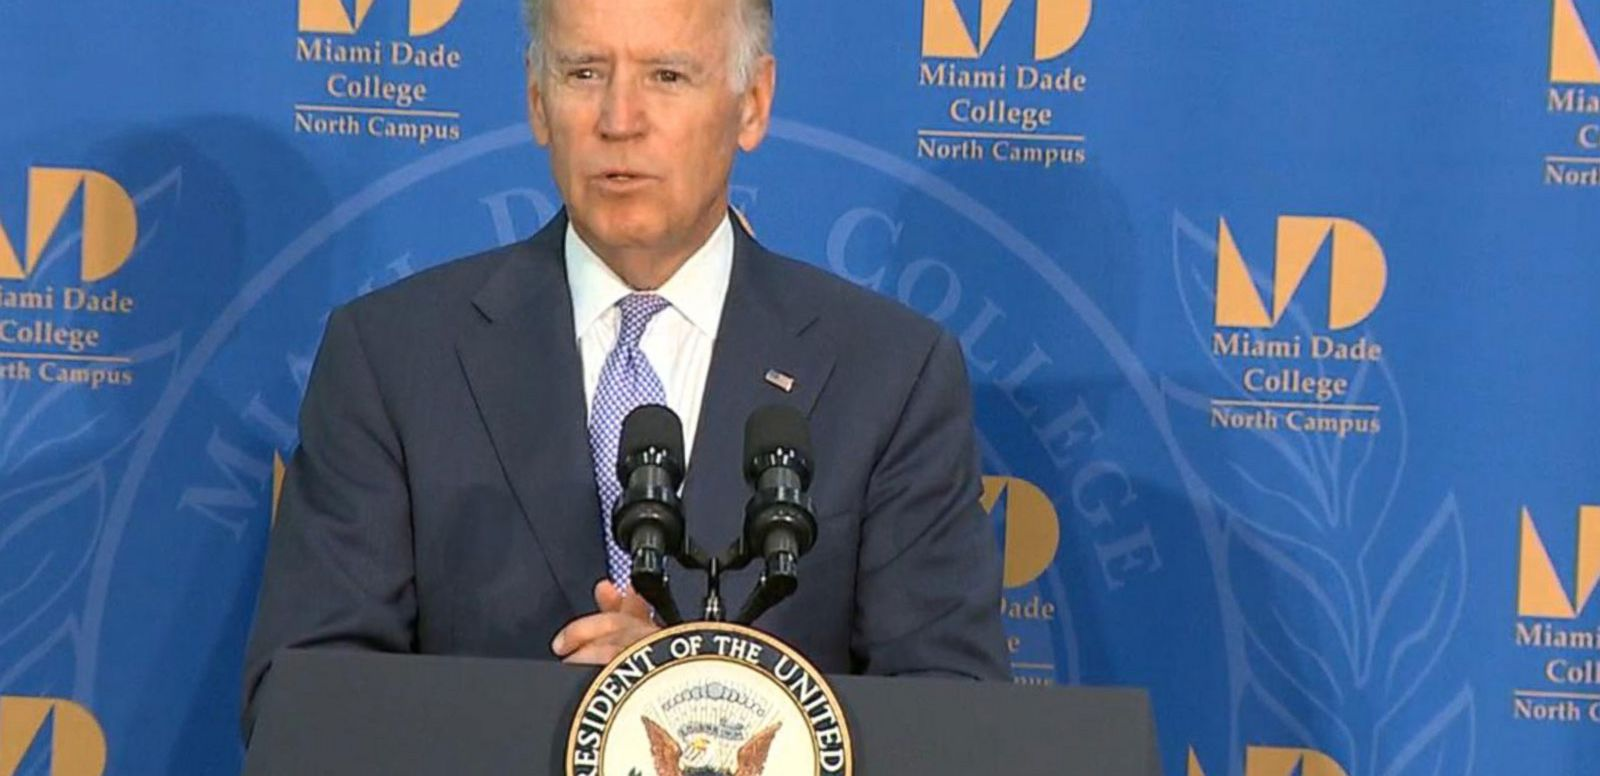 VIDEO: Joe Biden Presidential Run Still Possible But Time May Be Running Out